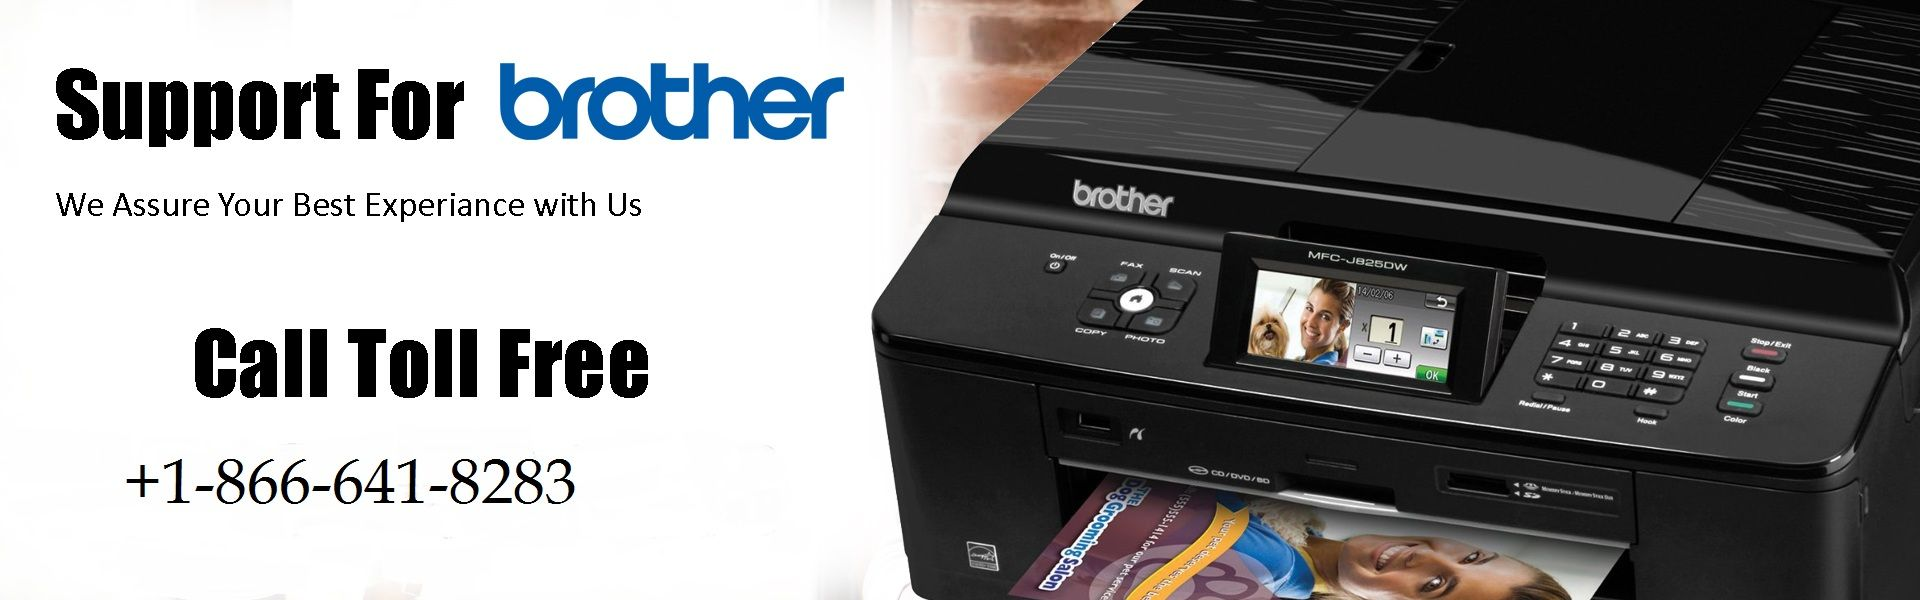 Brother Printer Driver Support Number 1-866-641-8283 is our